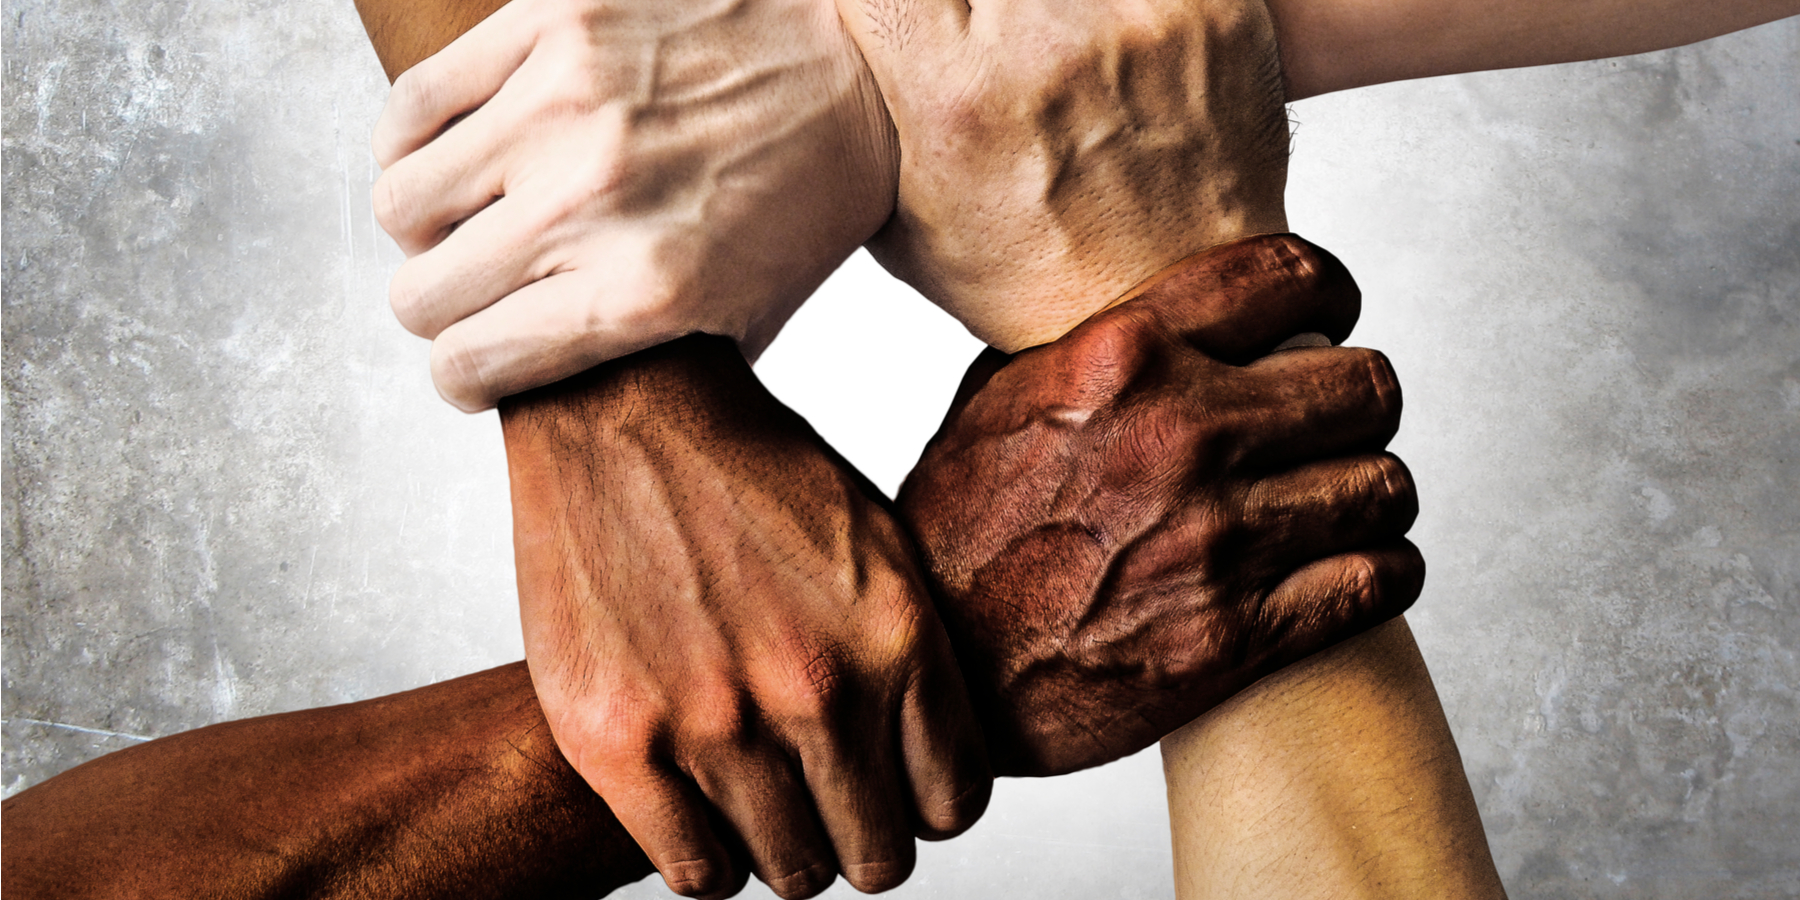 How Should Organizations Respond to Racism Against Health Care Workers?